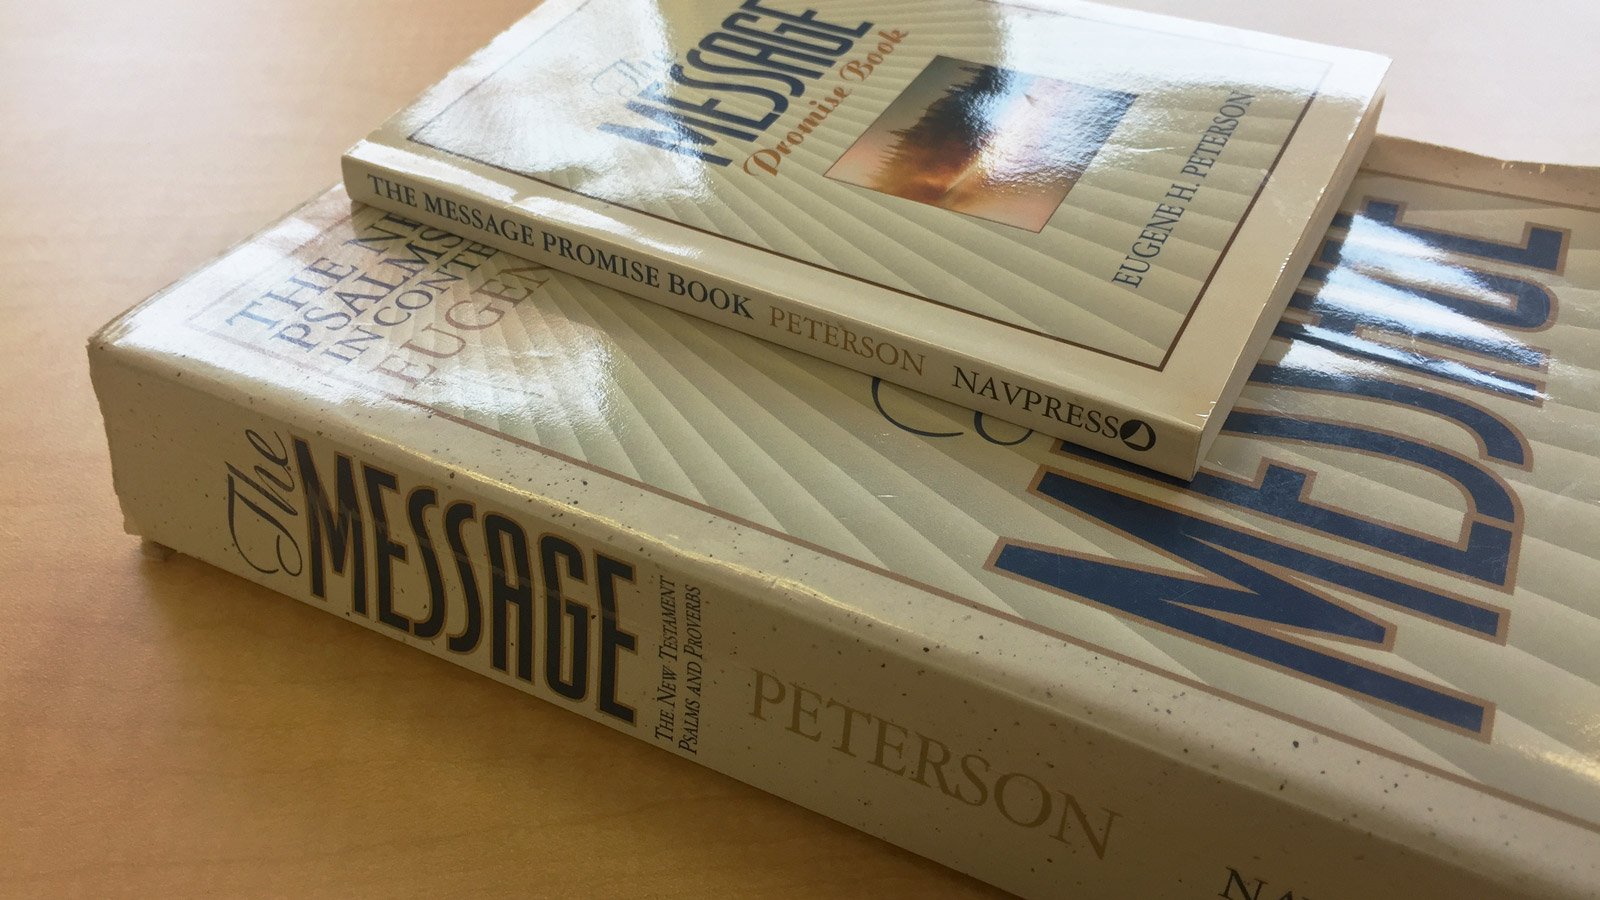 Eugene Peterson, author of The Message, says he was